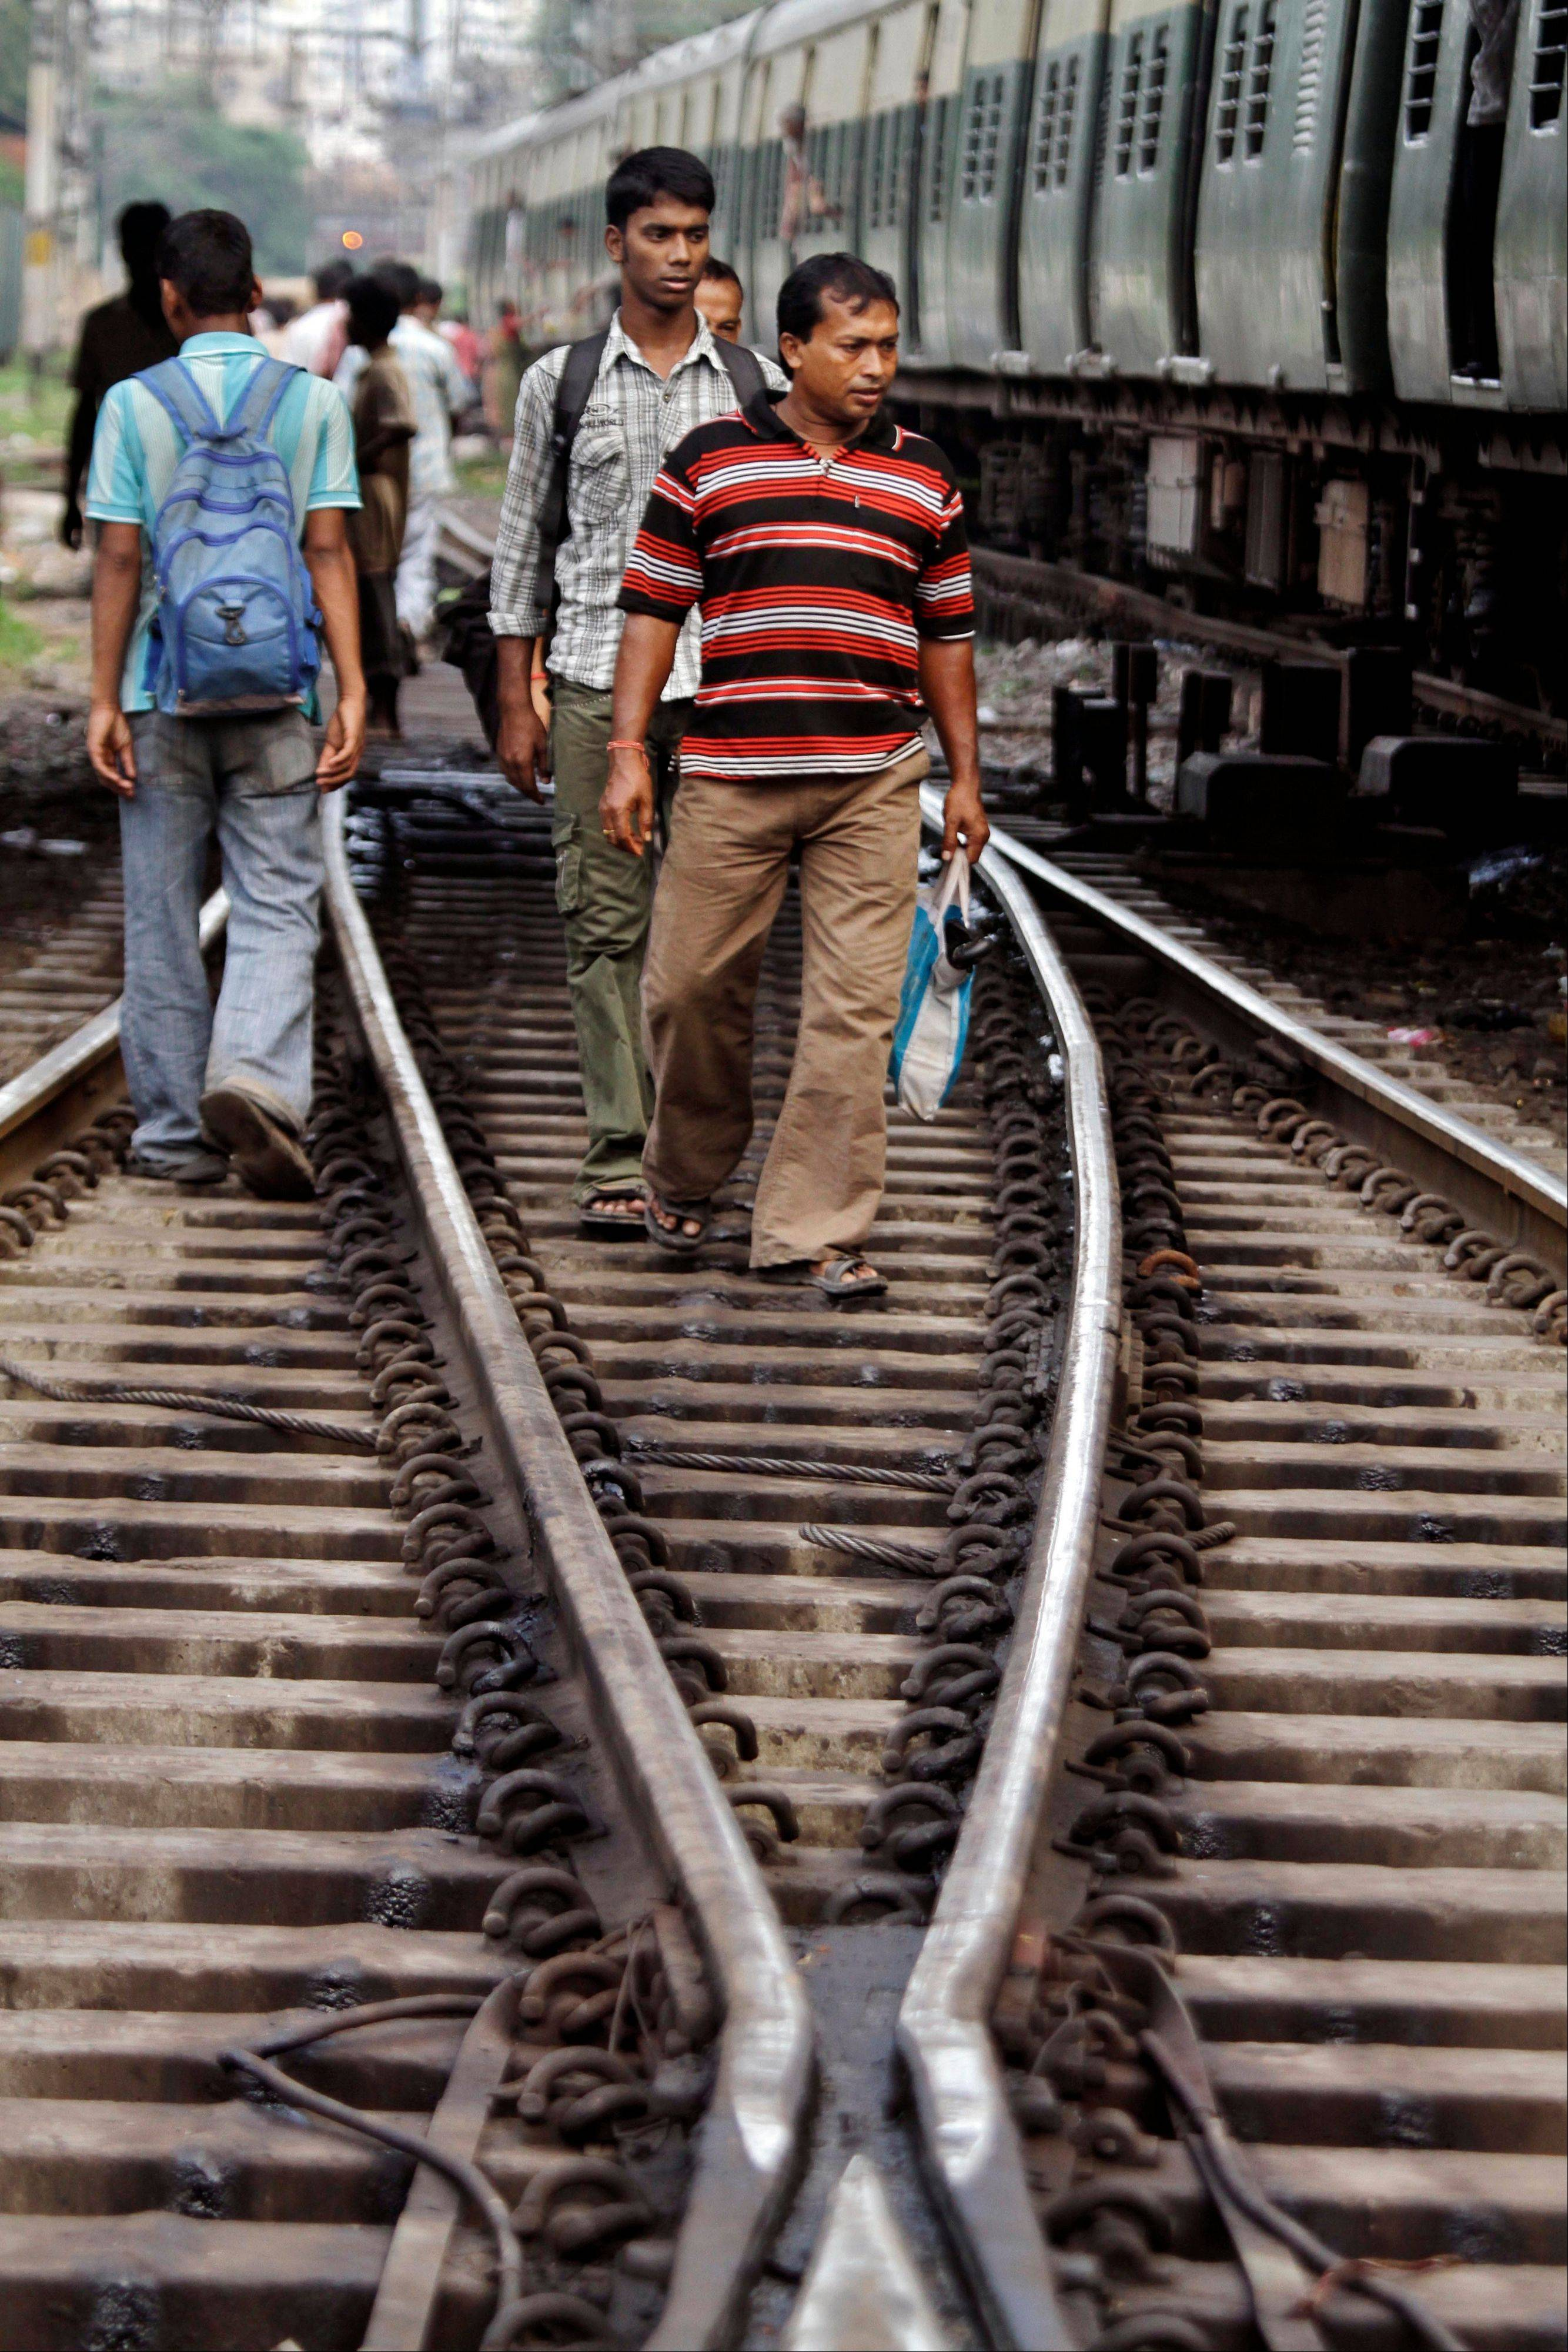 Indian passengers walk along railway track near a stalled local train at the Sealdah station following power outage in Kolkata, India, Tuesday, July 31, 2012. India's energy crisis cascaded over half the country Tuesday when three of its regional grids collapsed, leaving 620 million people without government-supplied electricity for several hours in, by far, the world's biggest-ever blackout. Hundreds of trains stalled across the country and traffic lights went out, causing widespread traffic jams in New Delhi.